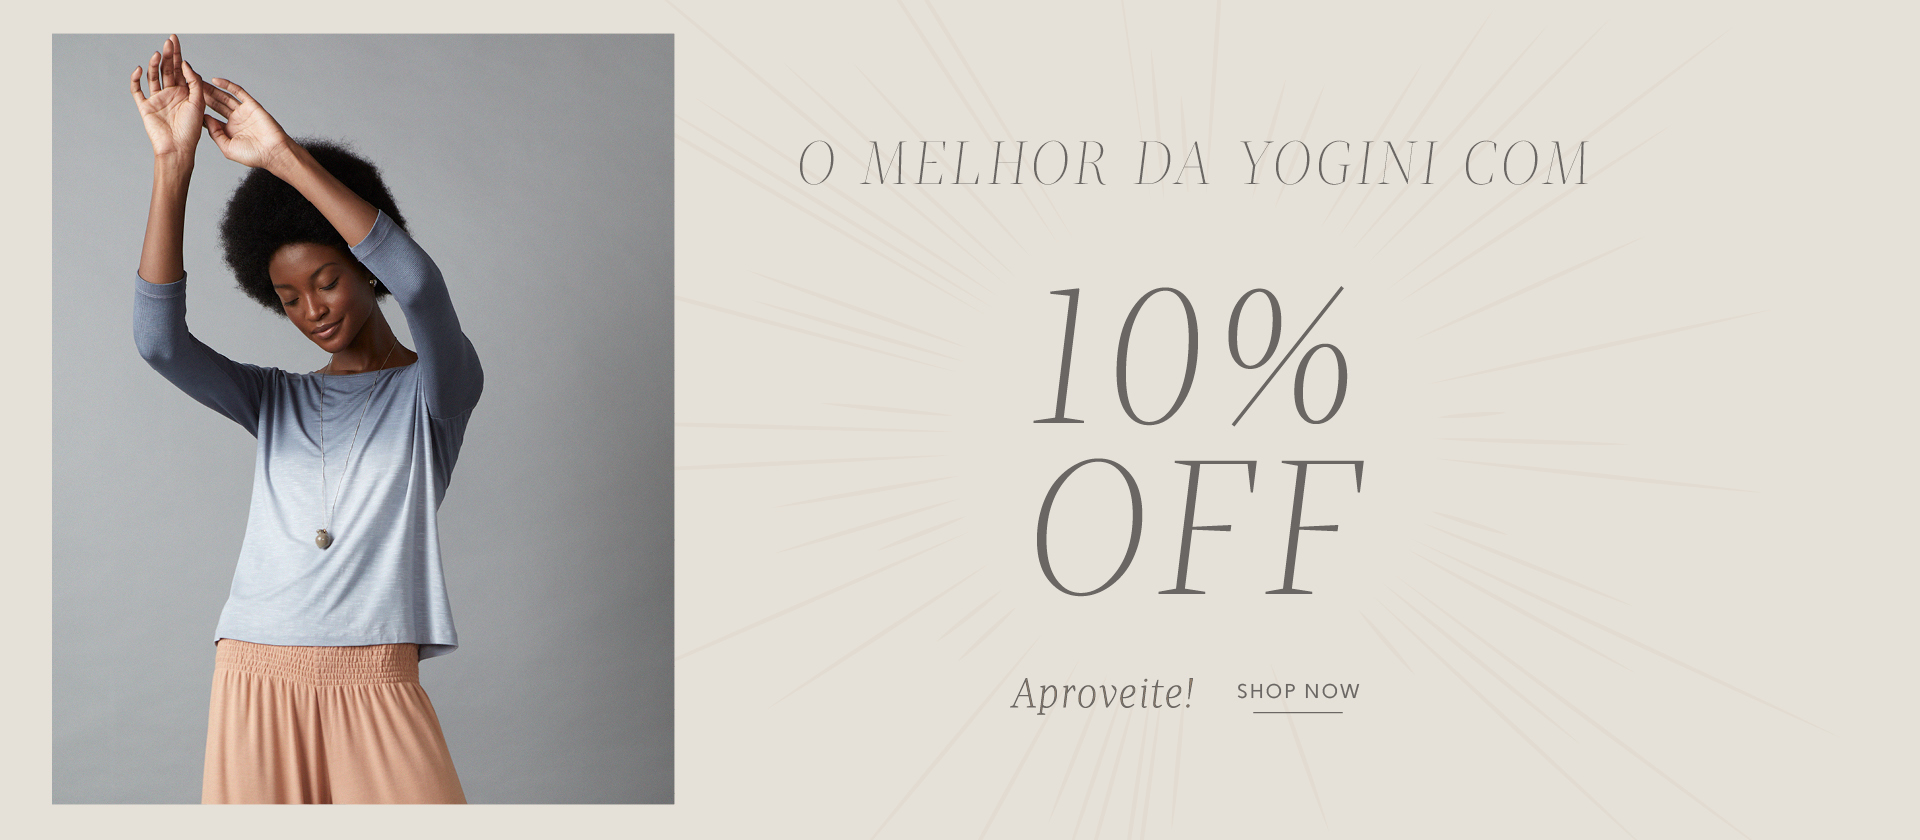 Desktop - 18/03 - 10%OFF